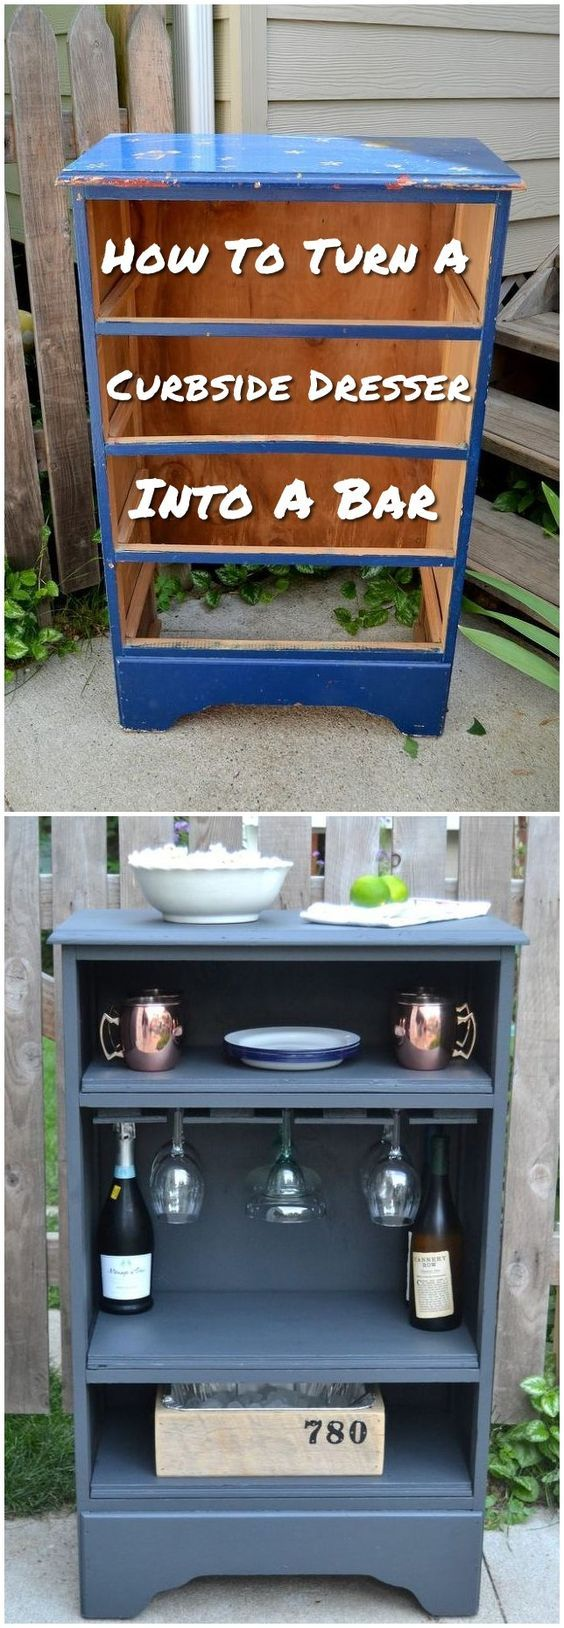 Turn a curbside dresser into a bar! Click on image to see more DIY home decor crafts.